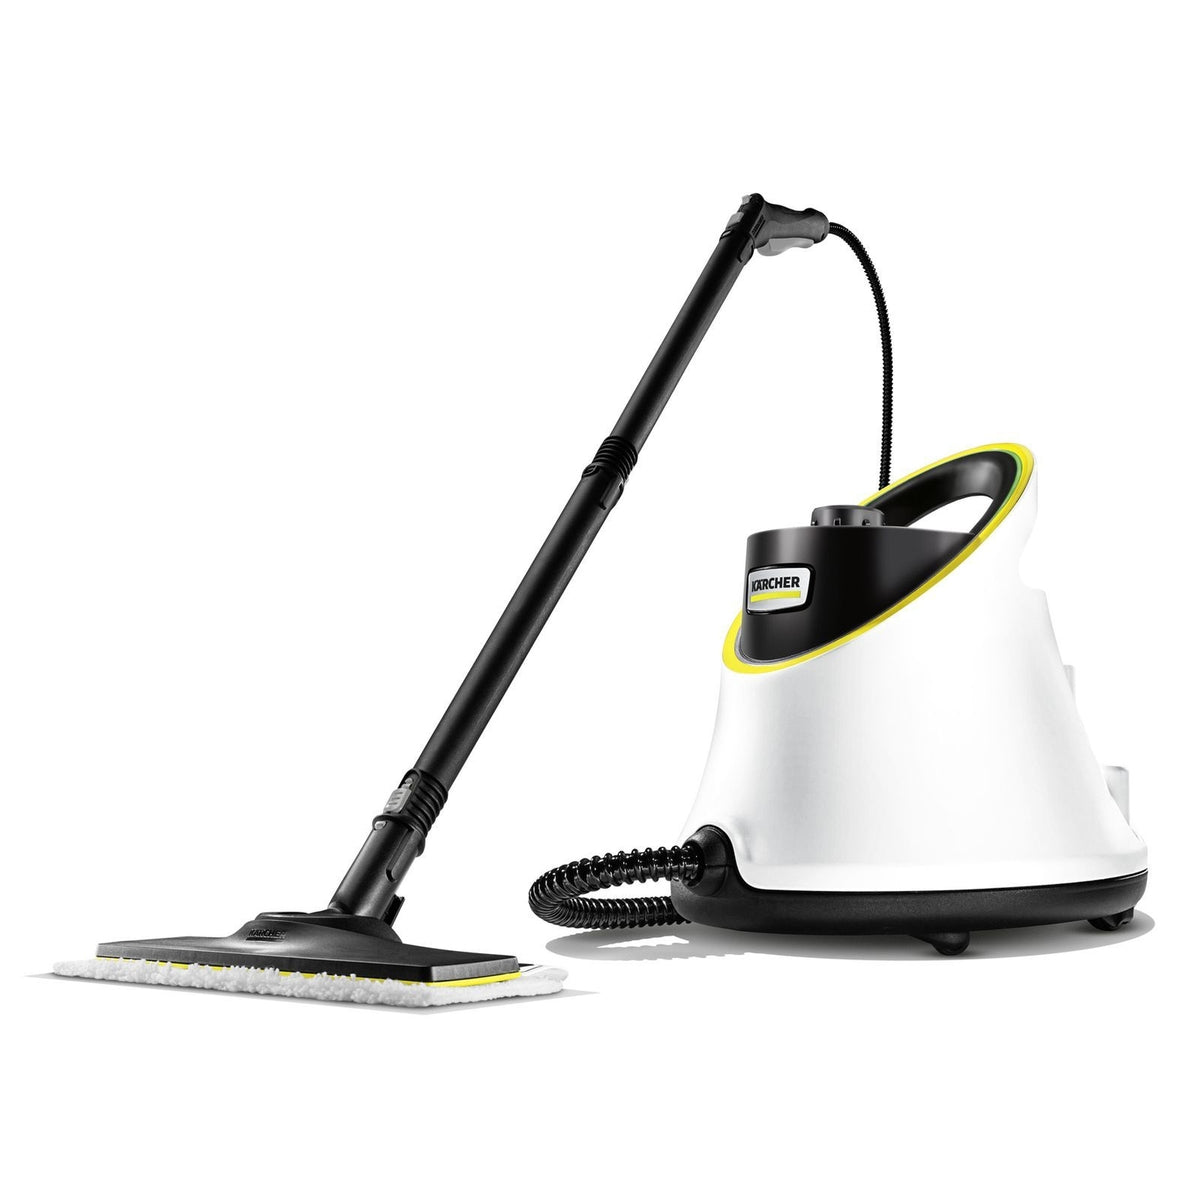 Karcher 1.513-250.0 SC2 Deluxe Steam Cleaner